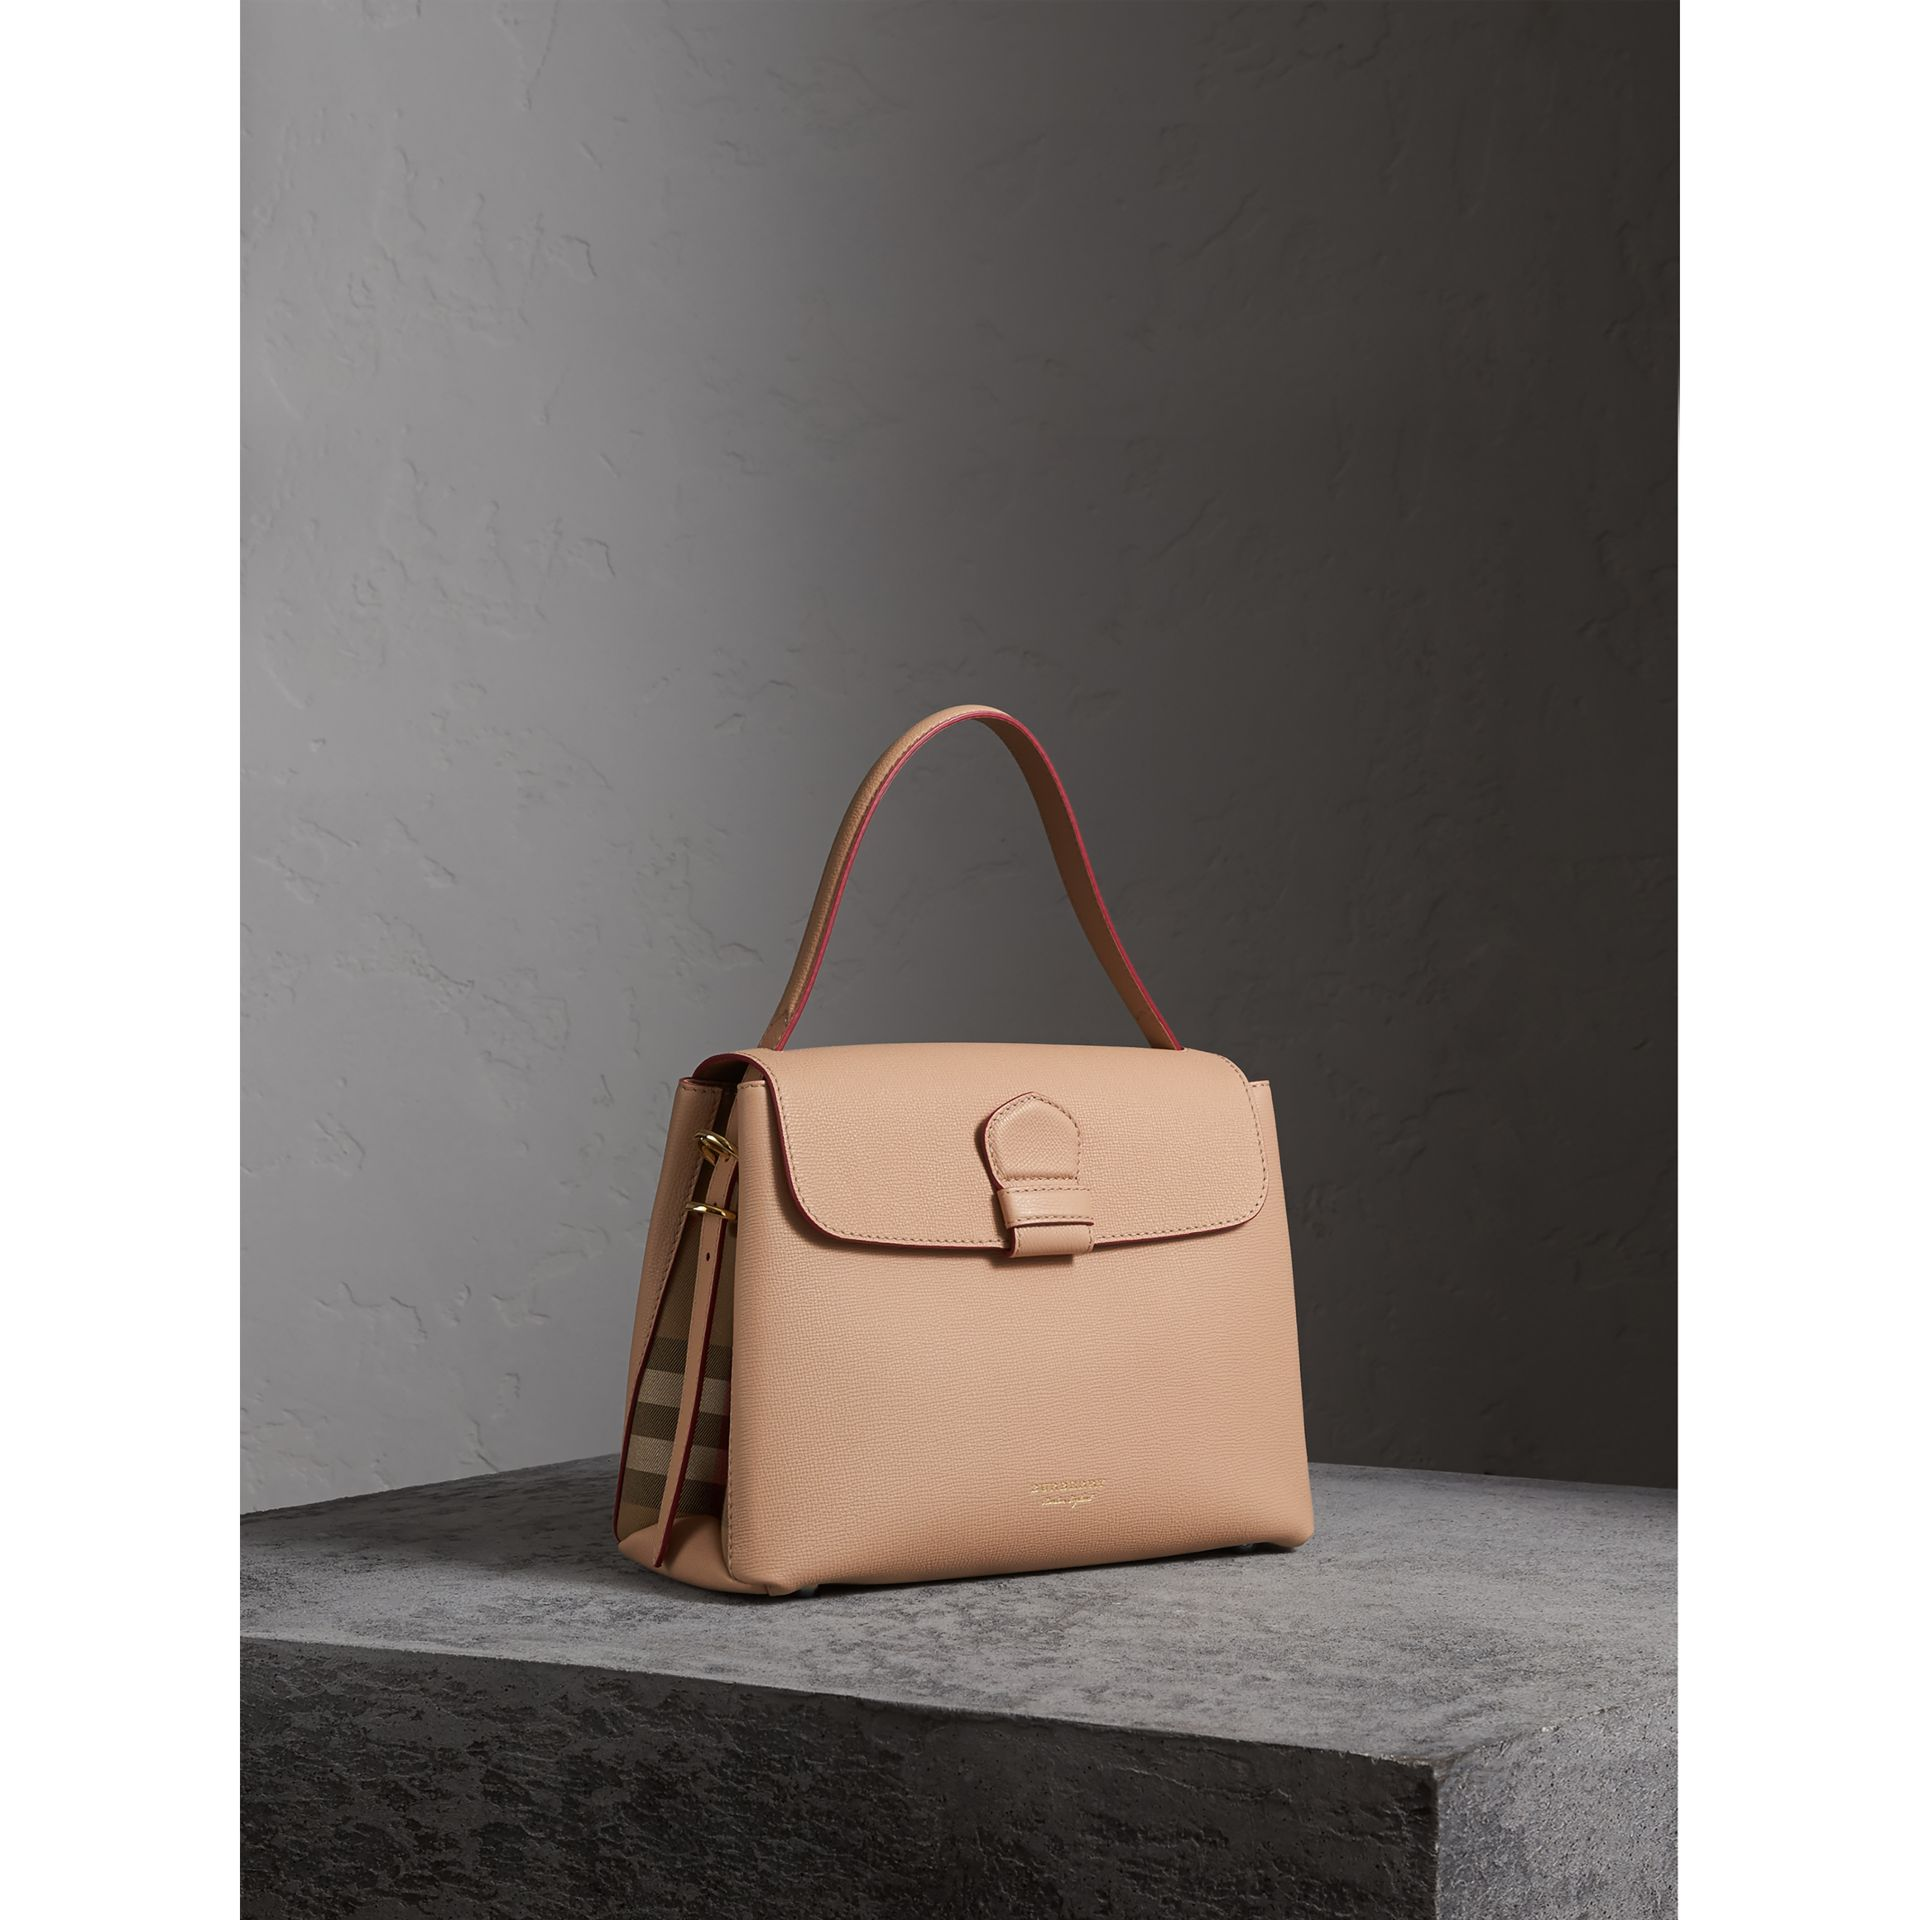 BURBERRY. Medium Grainy Leather And House Check Tote Bag ... 72dcc060deb5d